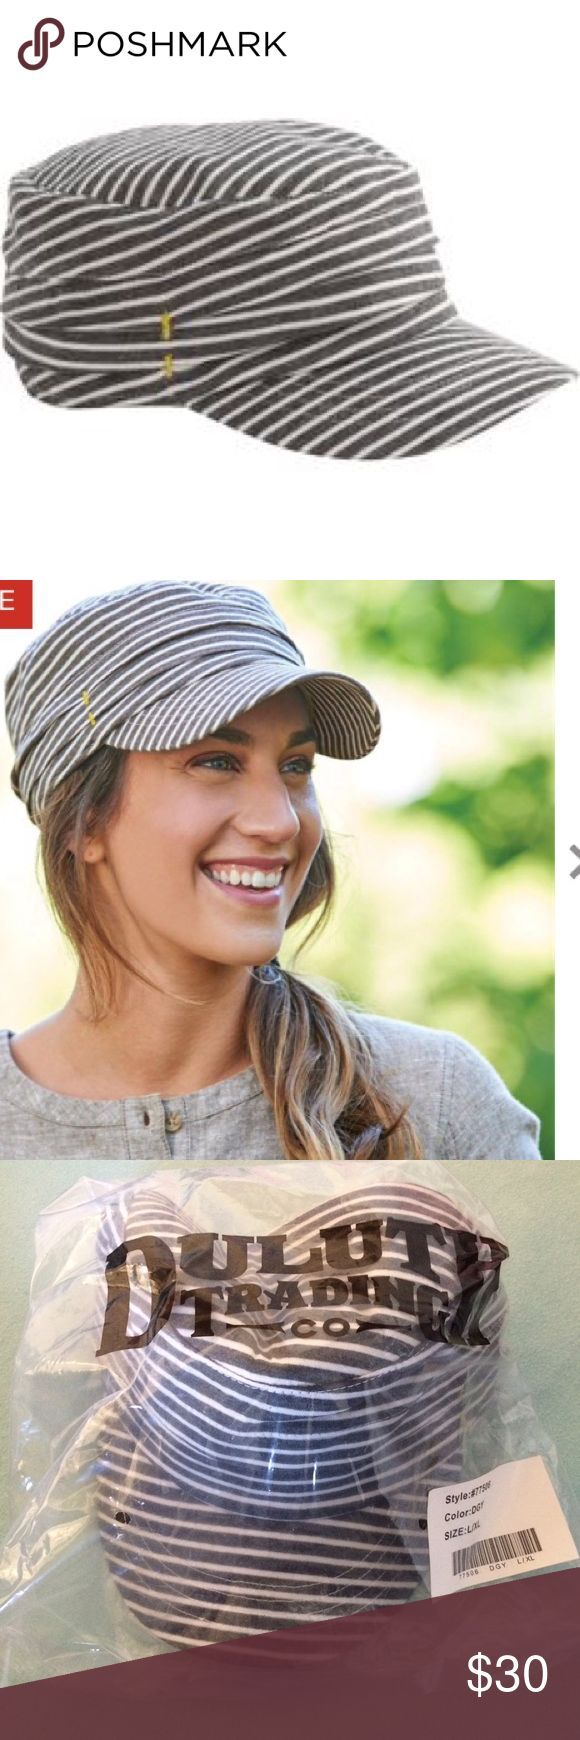 Duluth Women's Military Cap Striped cap with brim from the Duluth Trading Company. Don't forget about bundling and free gifts with every purchase! Duluth Trading Co Accessories Hats